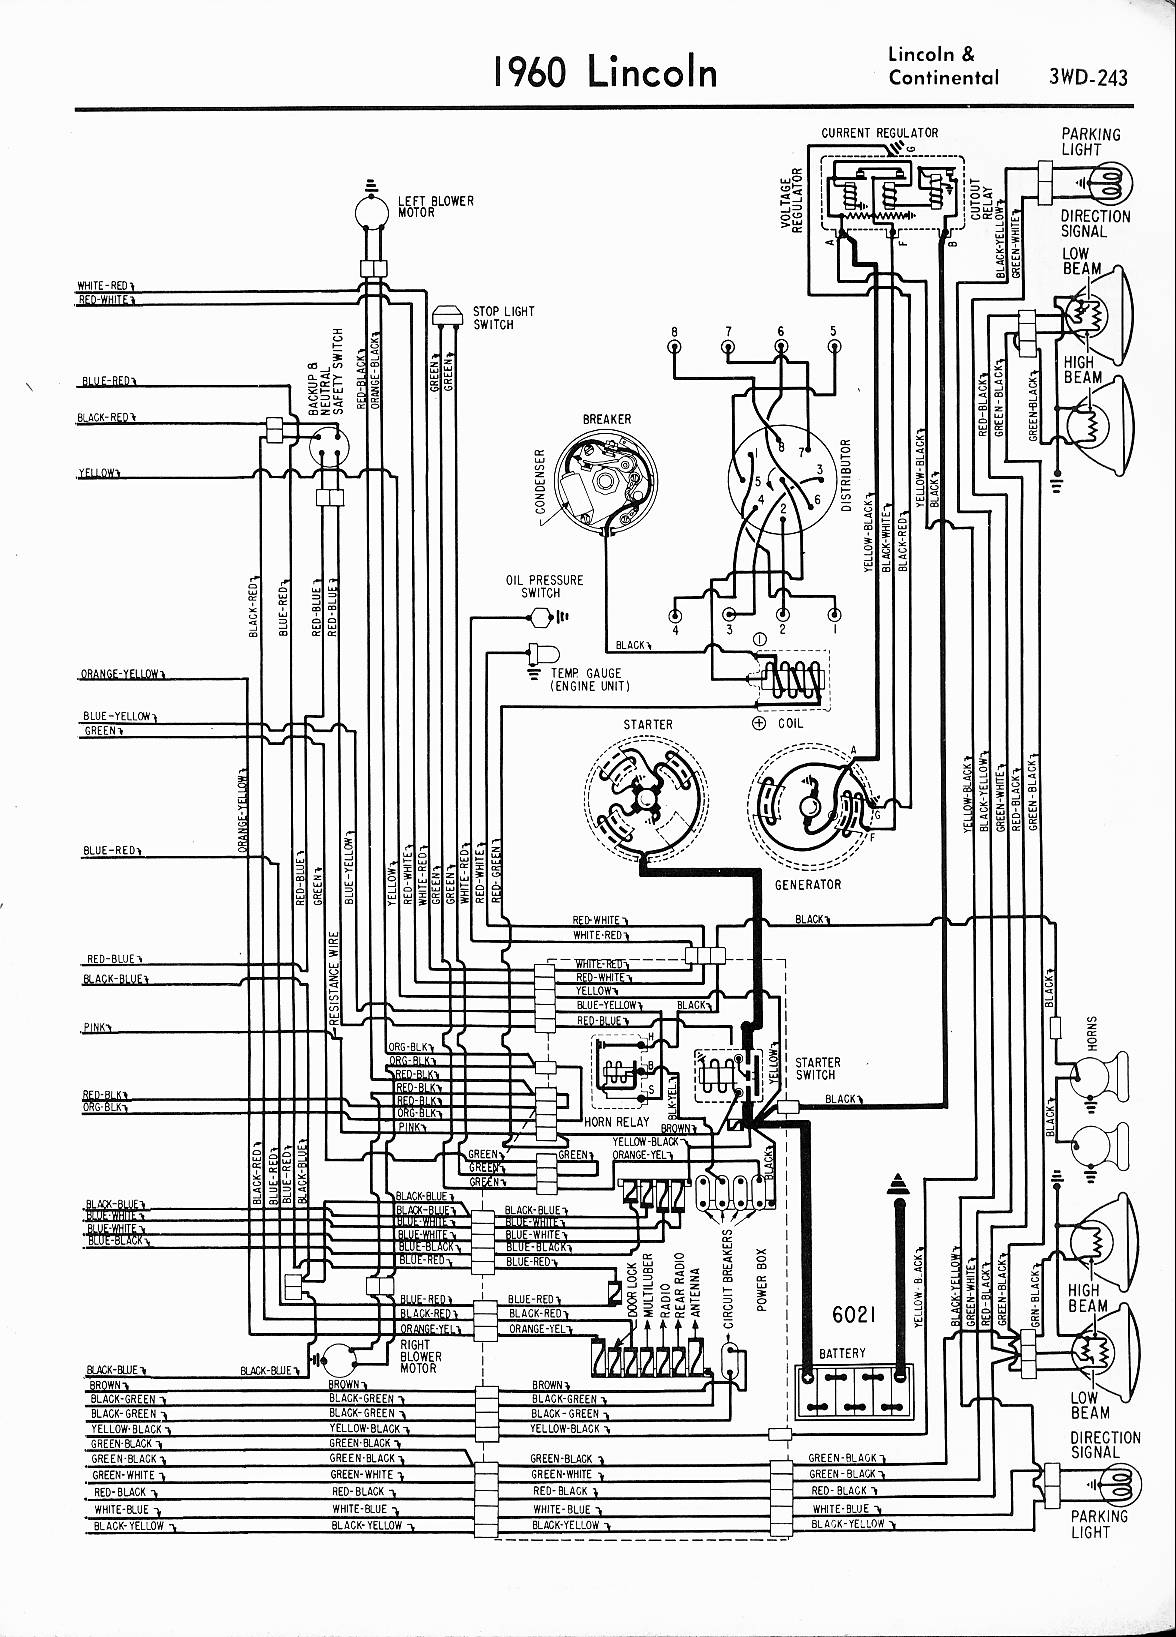 2004 Lincoln Town Car Fuse Box Diagram : lincoln, diagram, Lincoln, Starter, Wiring, Diagram, Database, Diplomat, Gear-cattle, Gear-cattle.cantinabalares.it